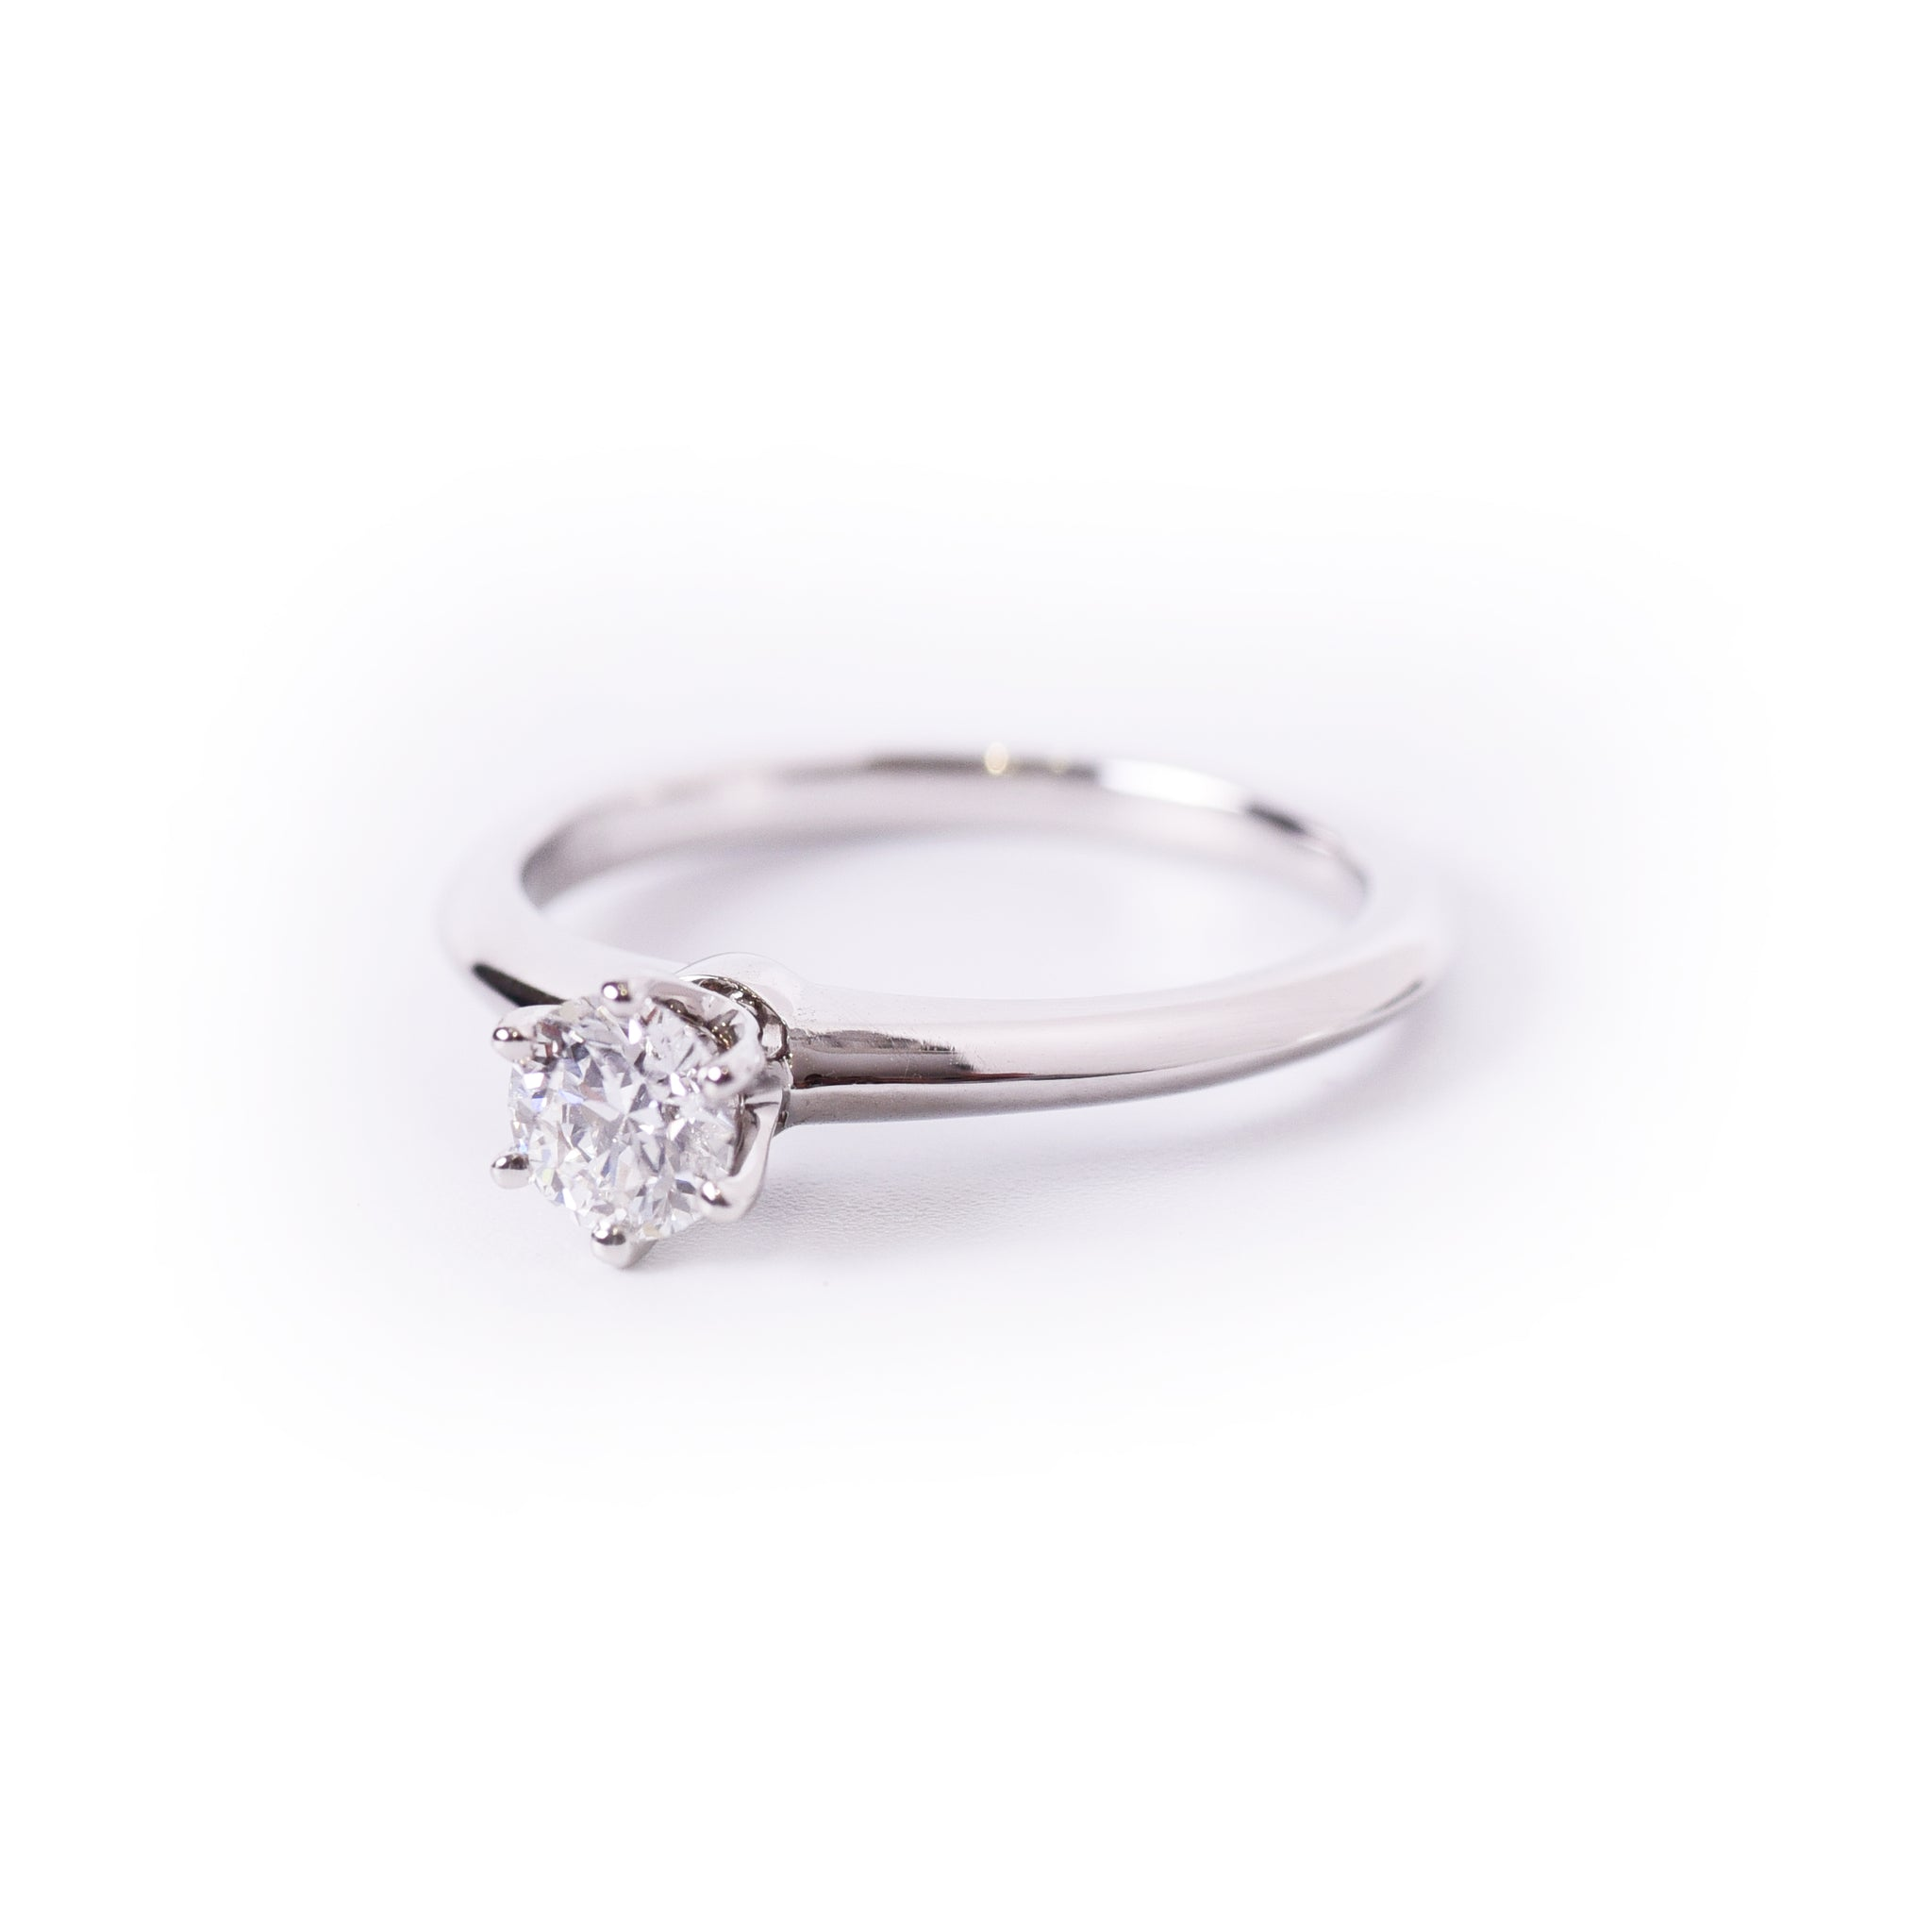 engagement rings ring etoile diamond tiffany to co platinum thumbnails itm enlarge click ctw in fv